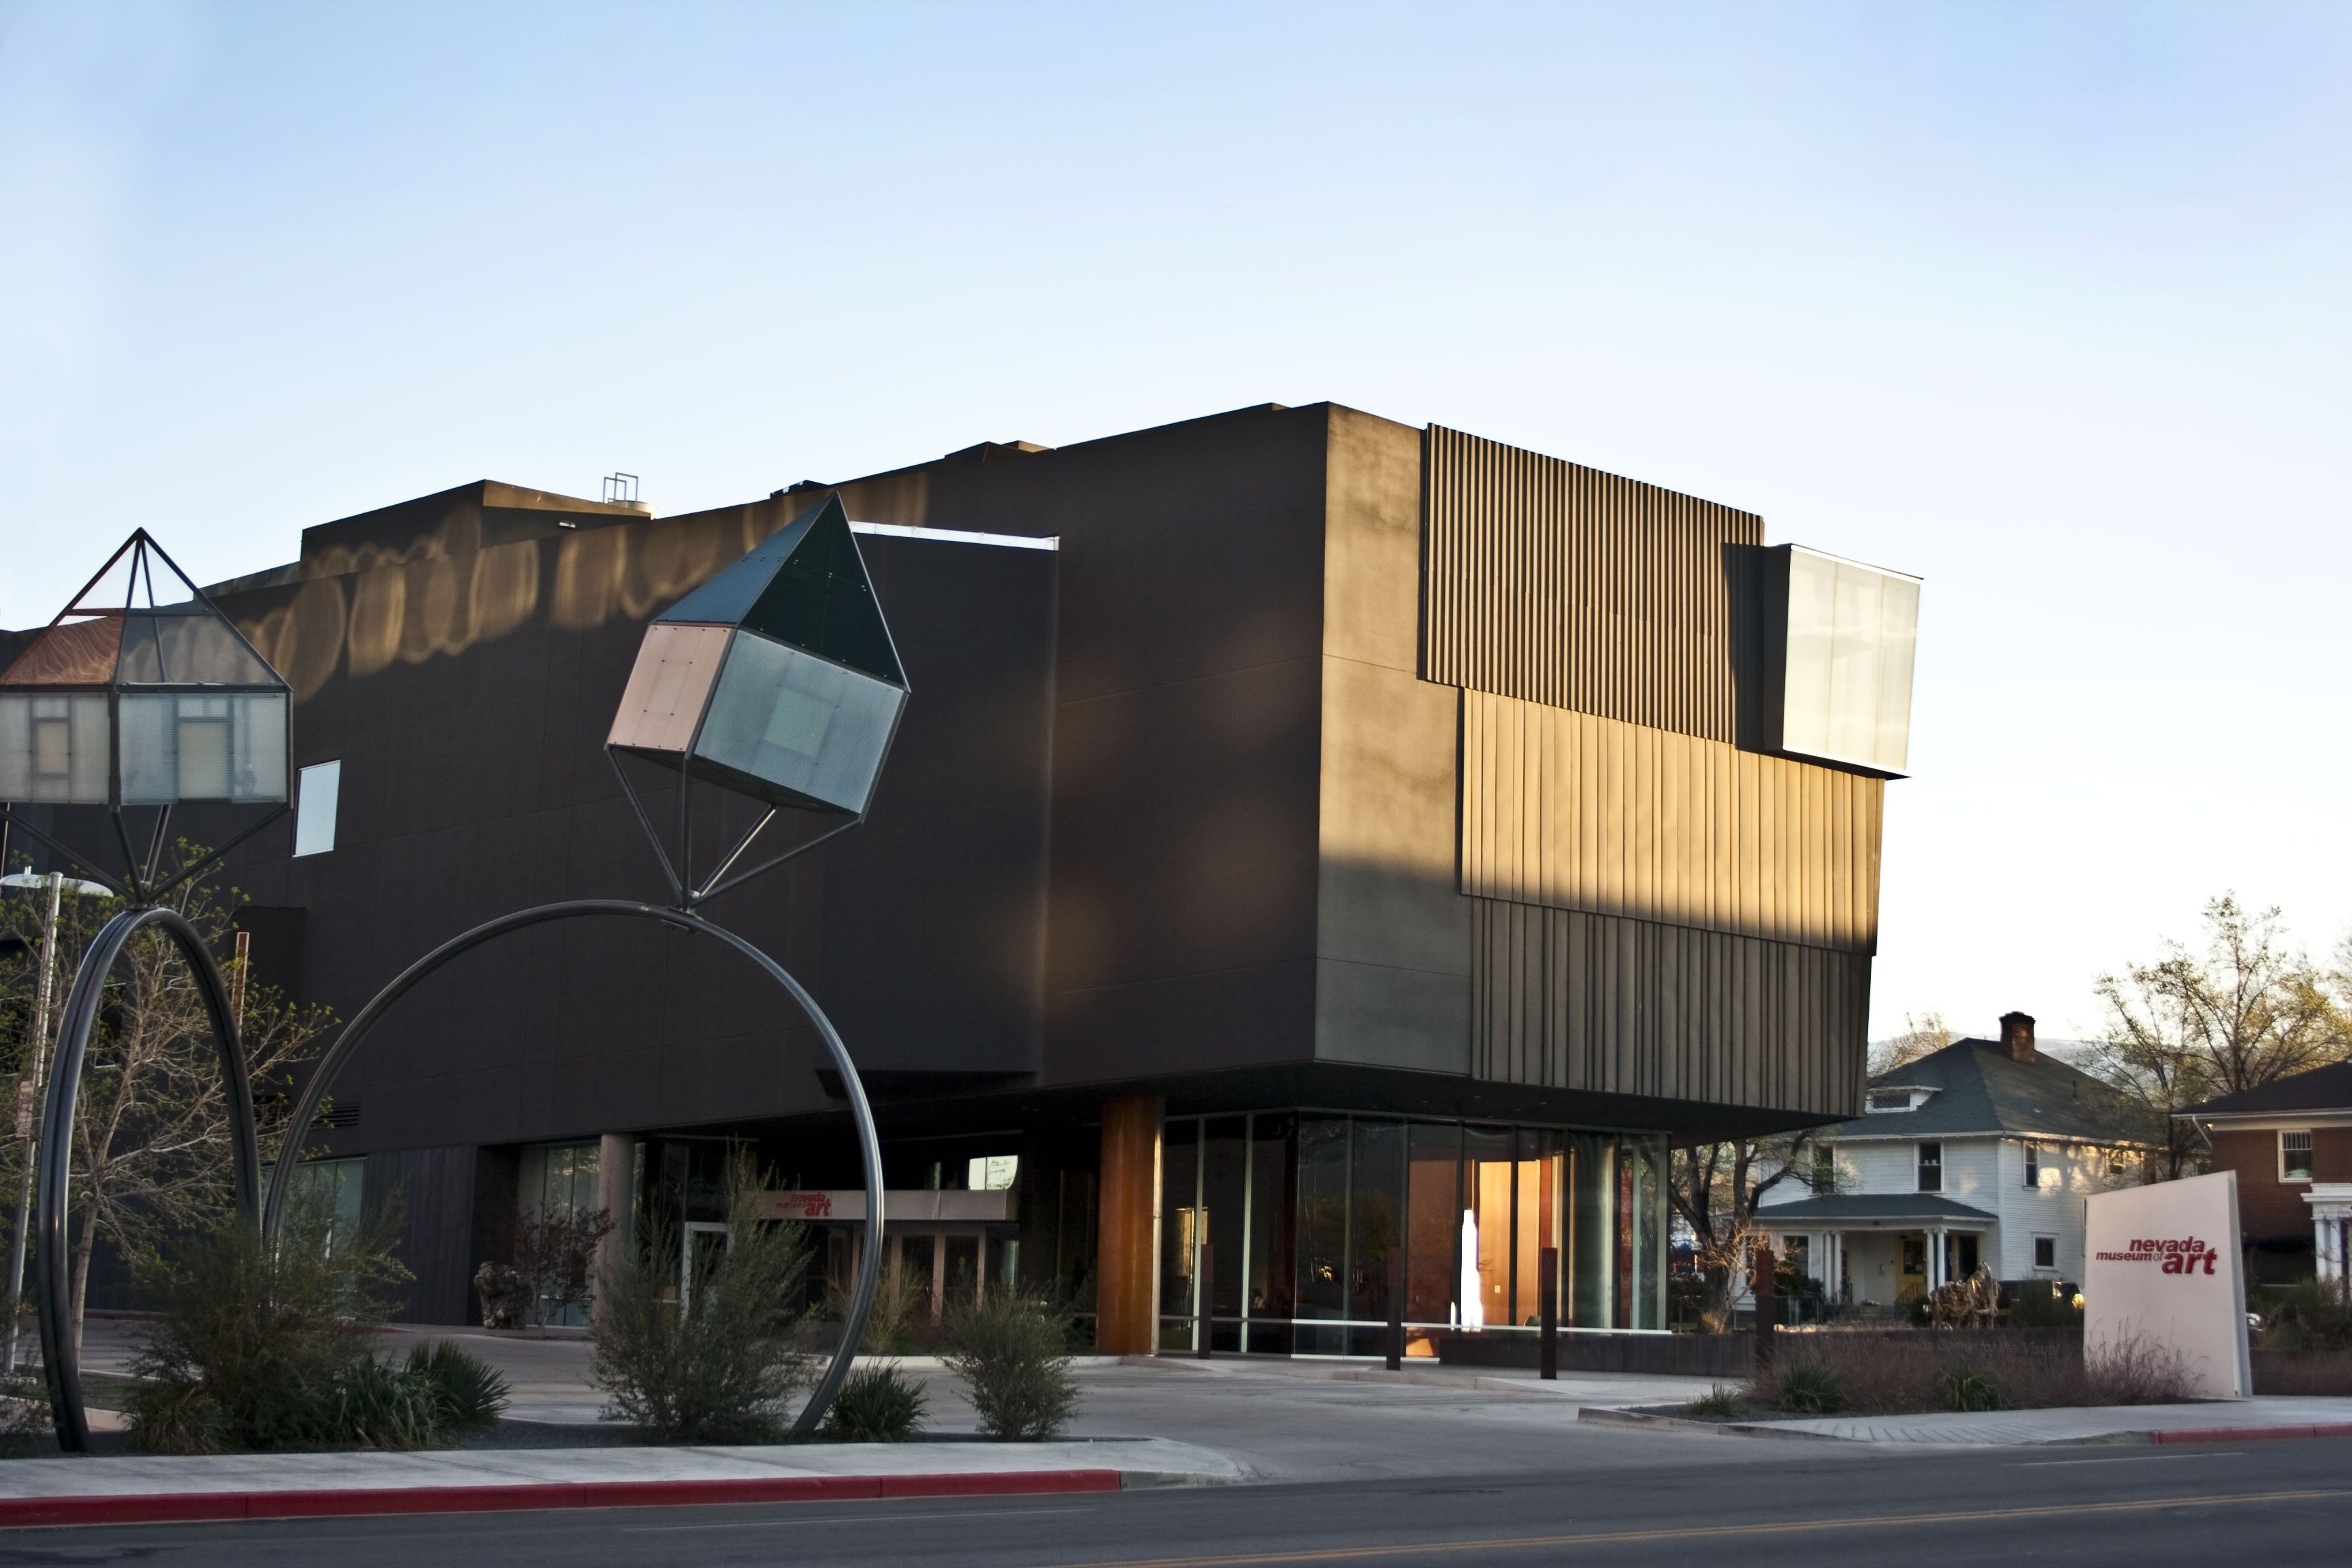 Sights The Nevada Museum Of Art You Can T Miss The Museum S New And Very Distinctive Headquarters Downtown The Four Level S Reno Nevada Truckee River Nevada